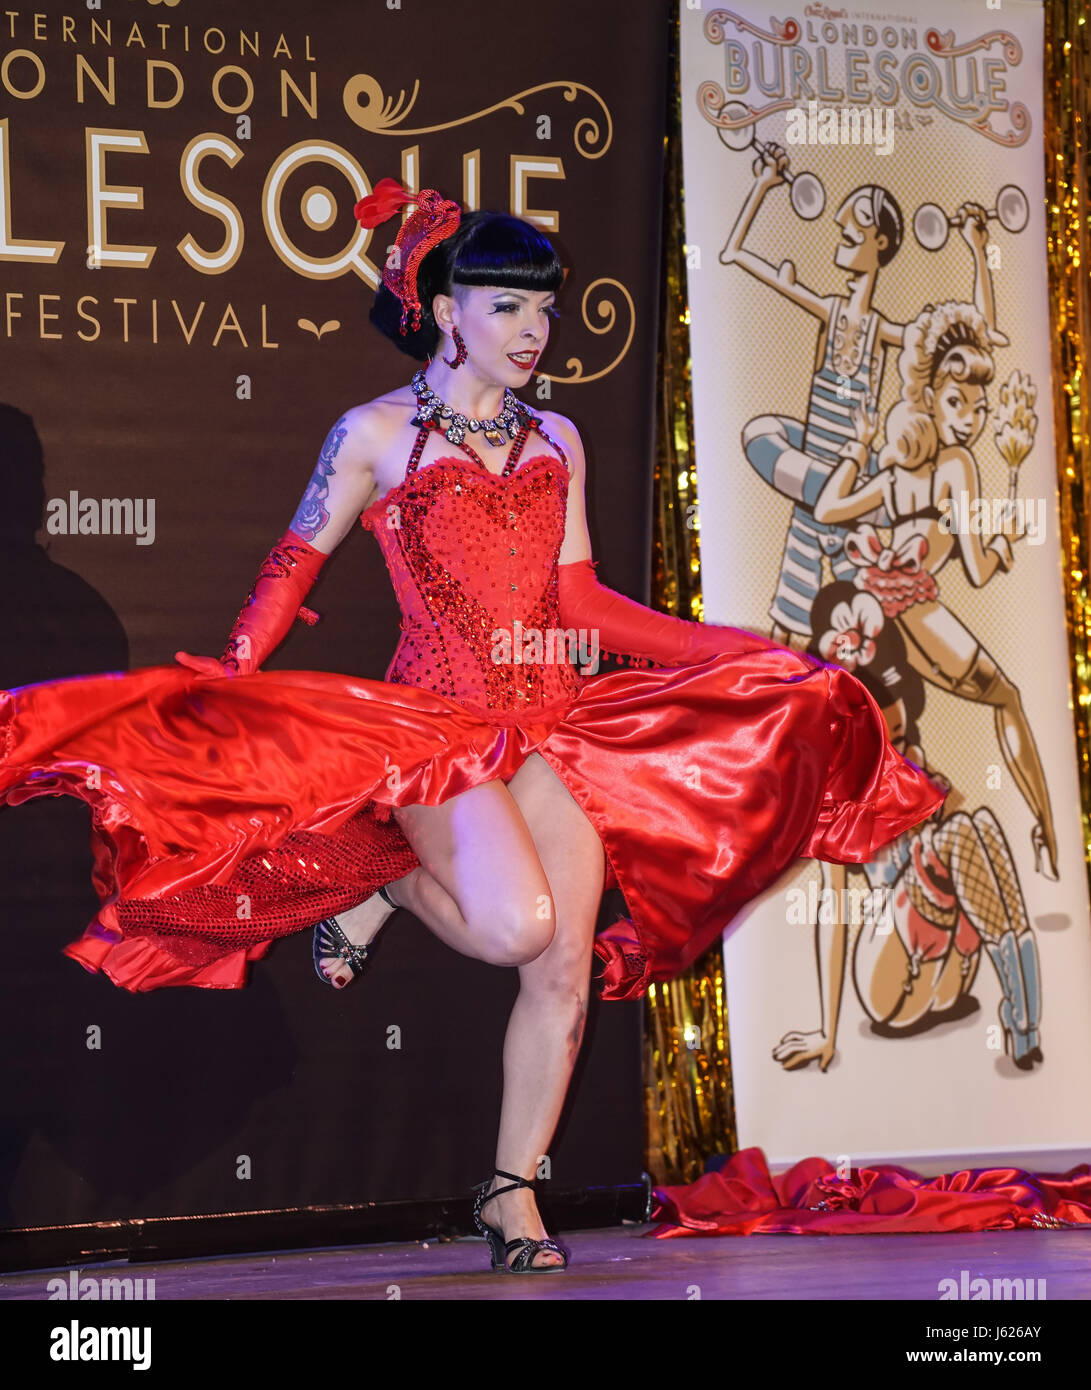 London, UK. 18th May, 2017. Louise L'Amour, Portugal performs at the London Burlesque Festival the VIP Opening - Stock Image